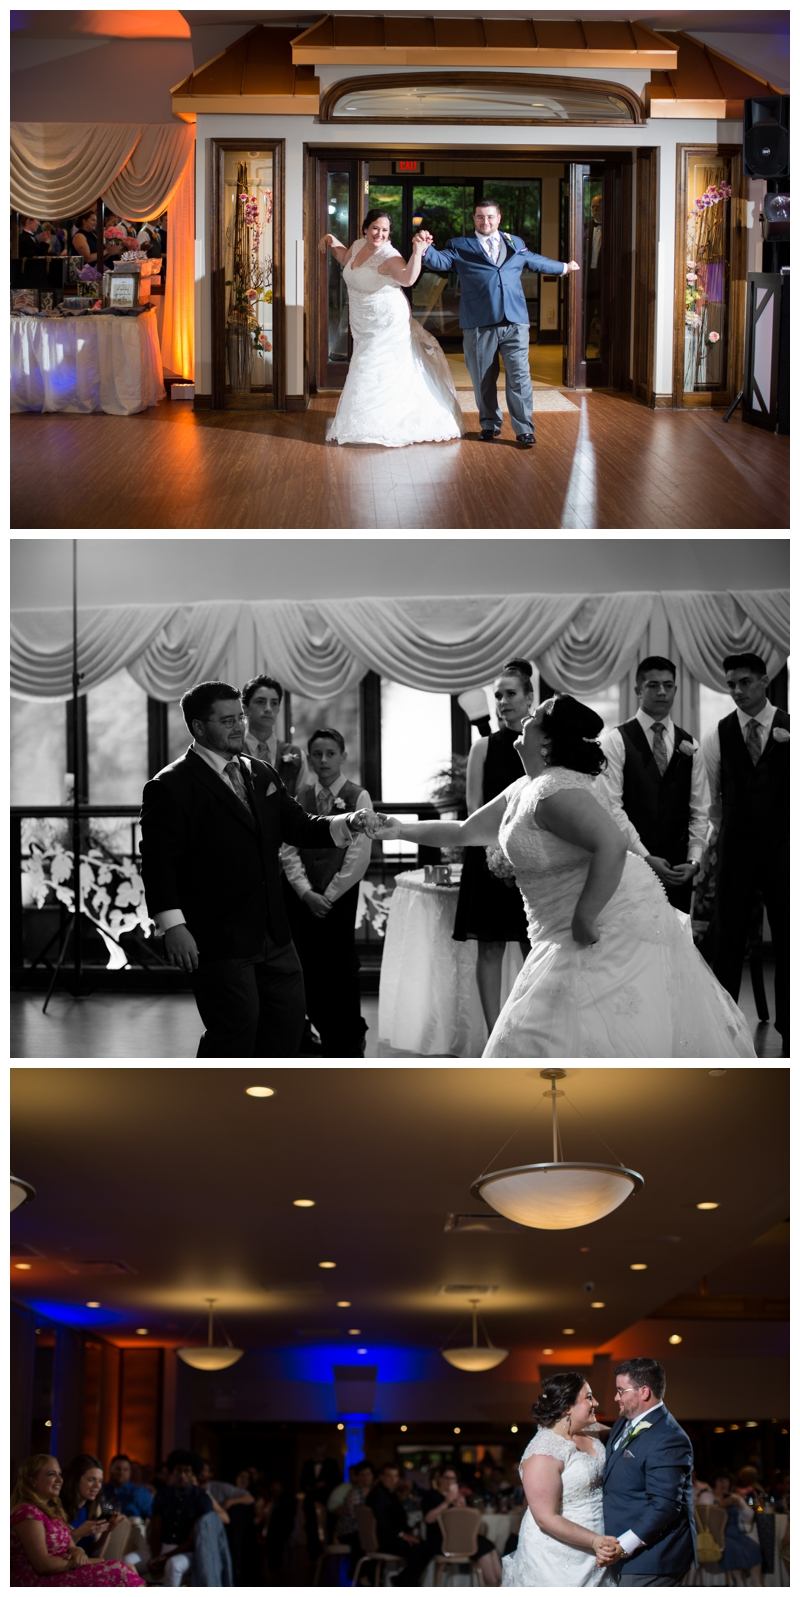 Bill and Carla danced their way into the reception at Auletto Caterers as Mr. and Mrs. Graff!